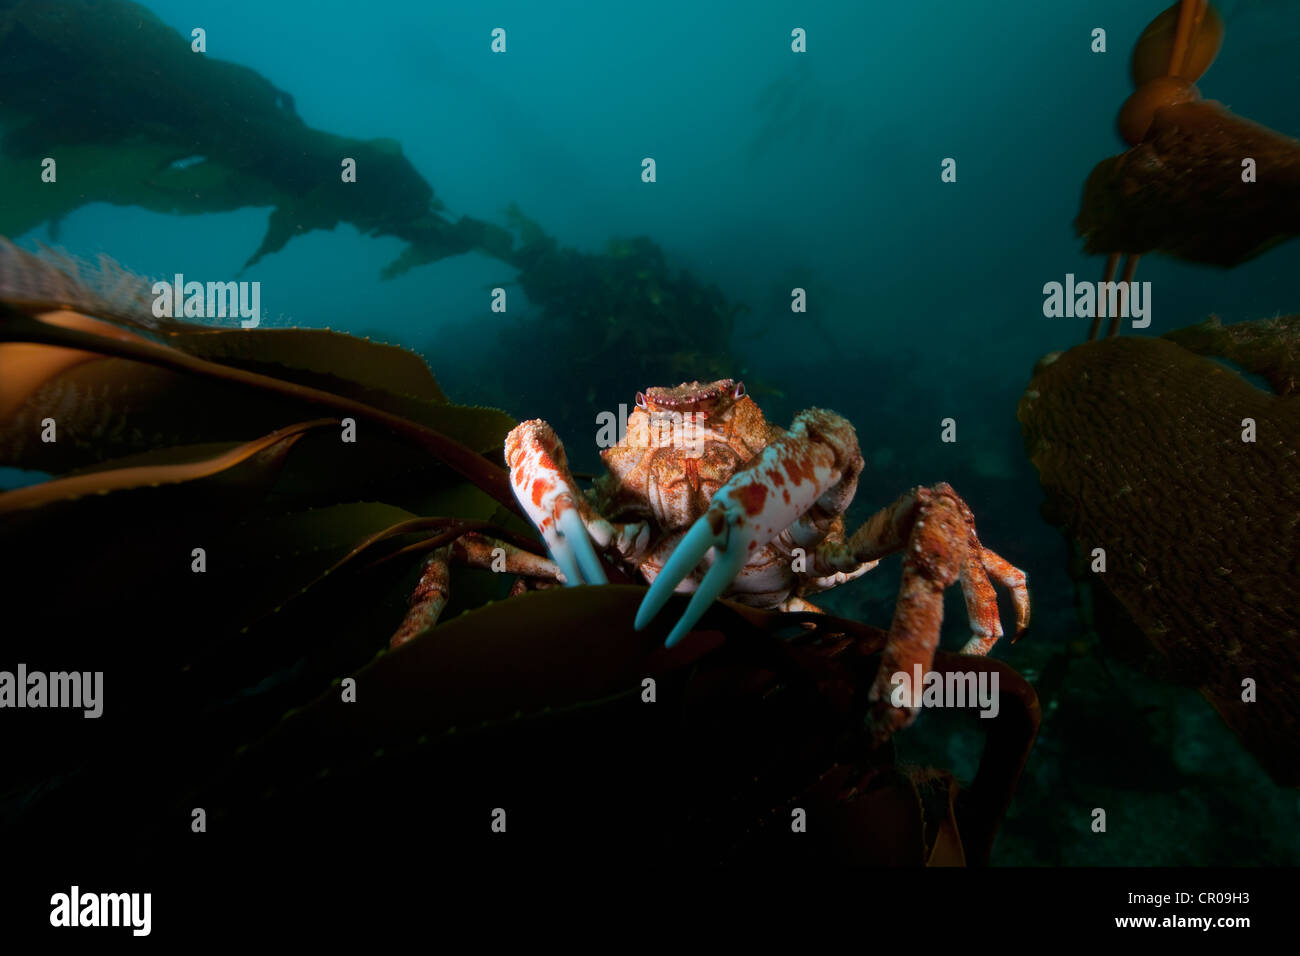 Close up of giant spider crab underwater - Stock Image